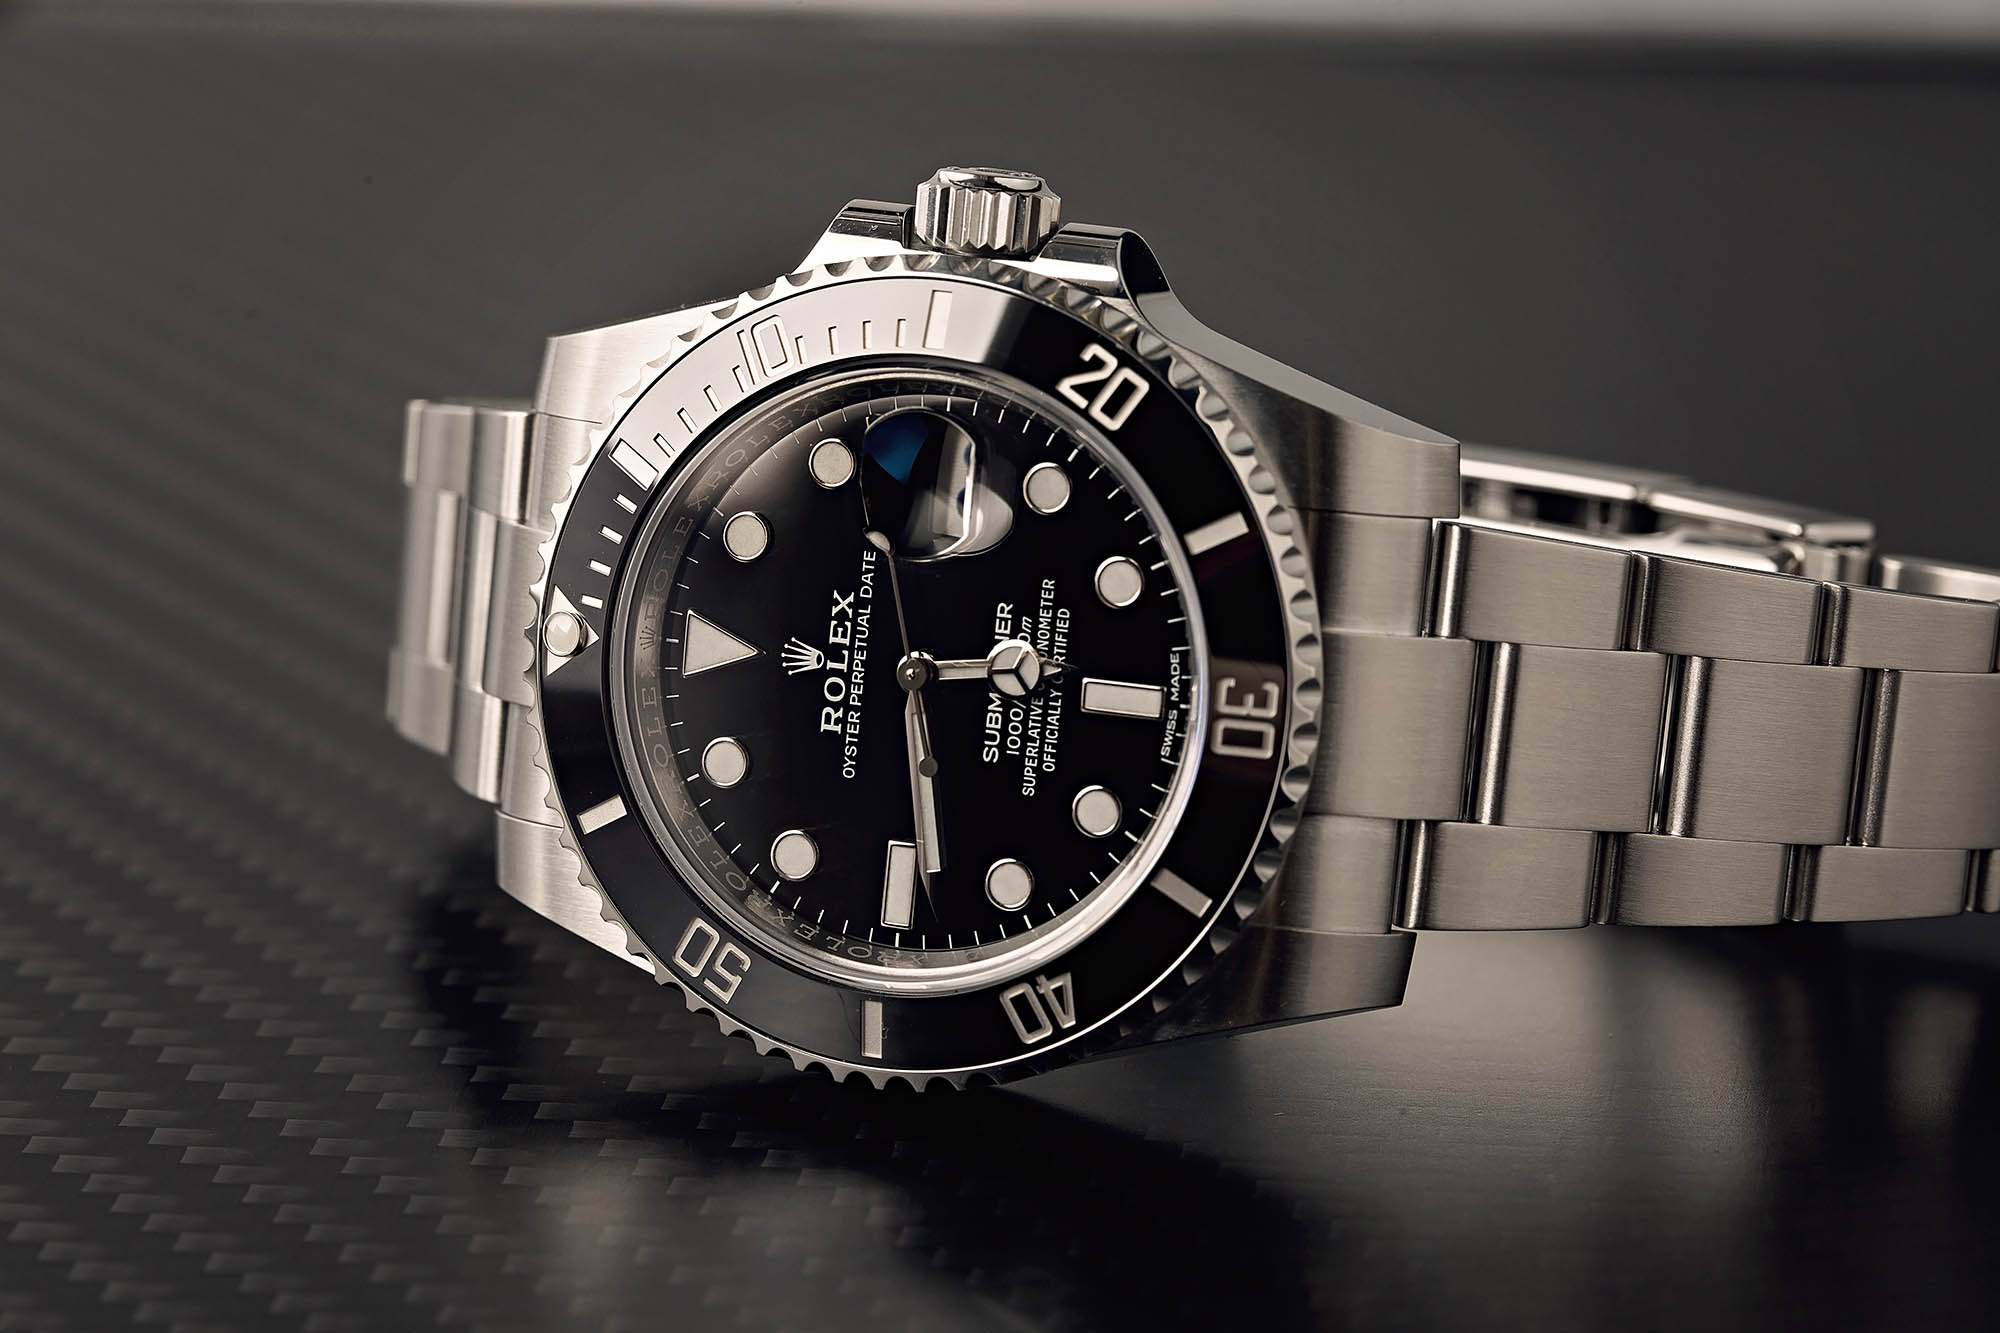 About Rolex Submariner 5513 Watches